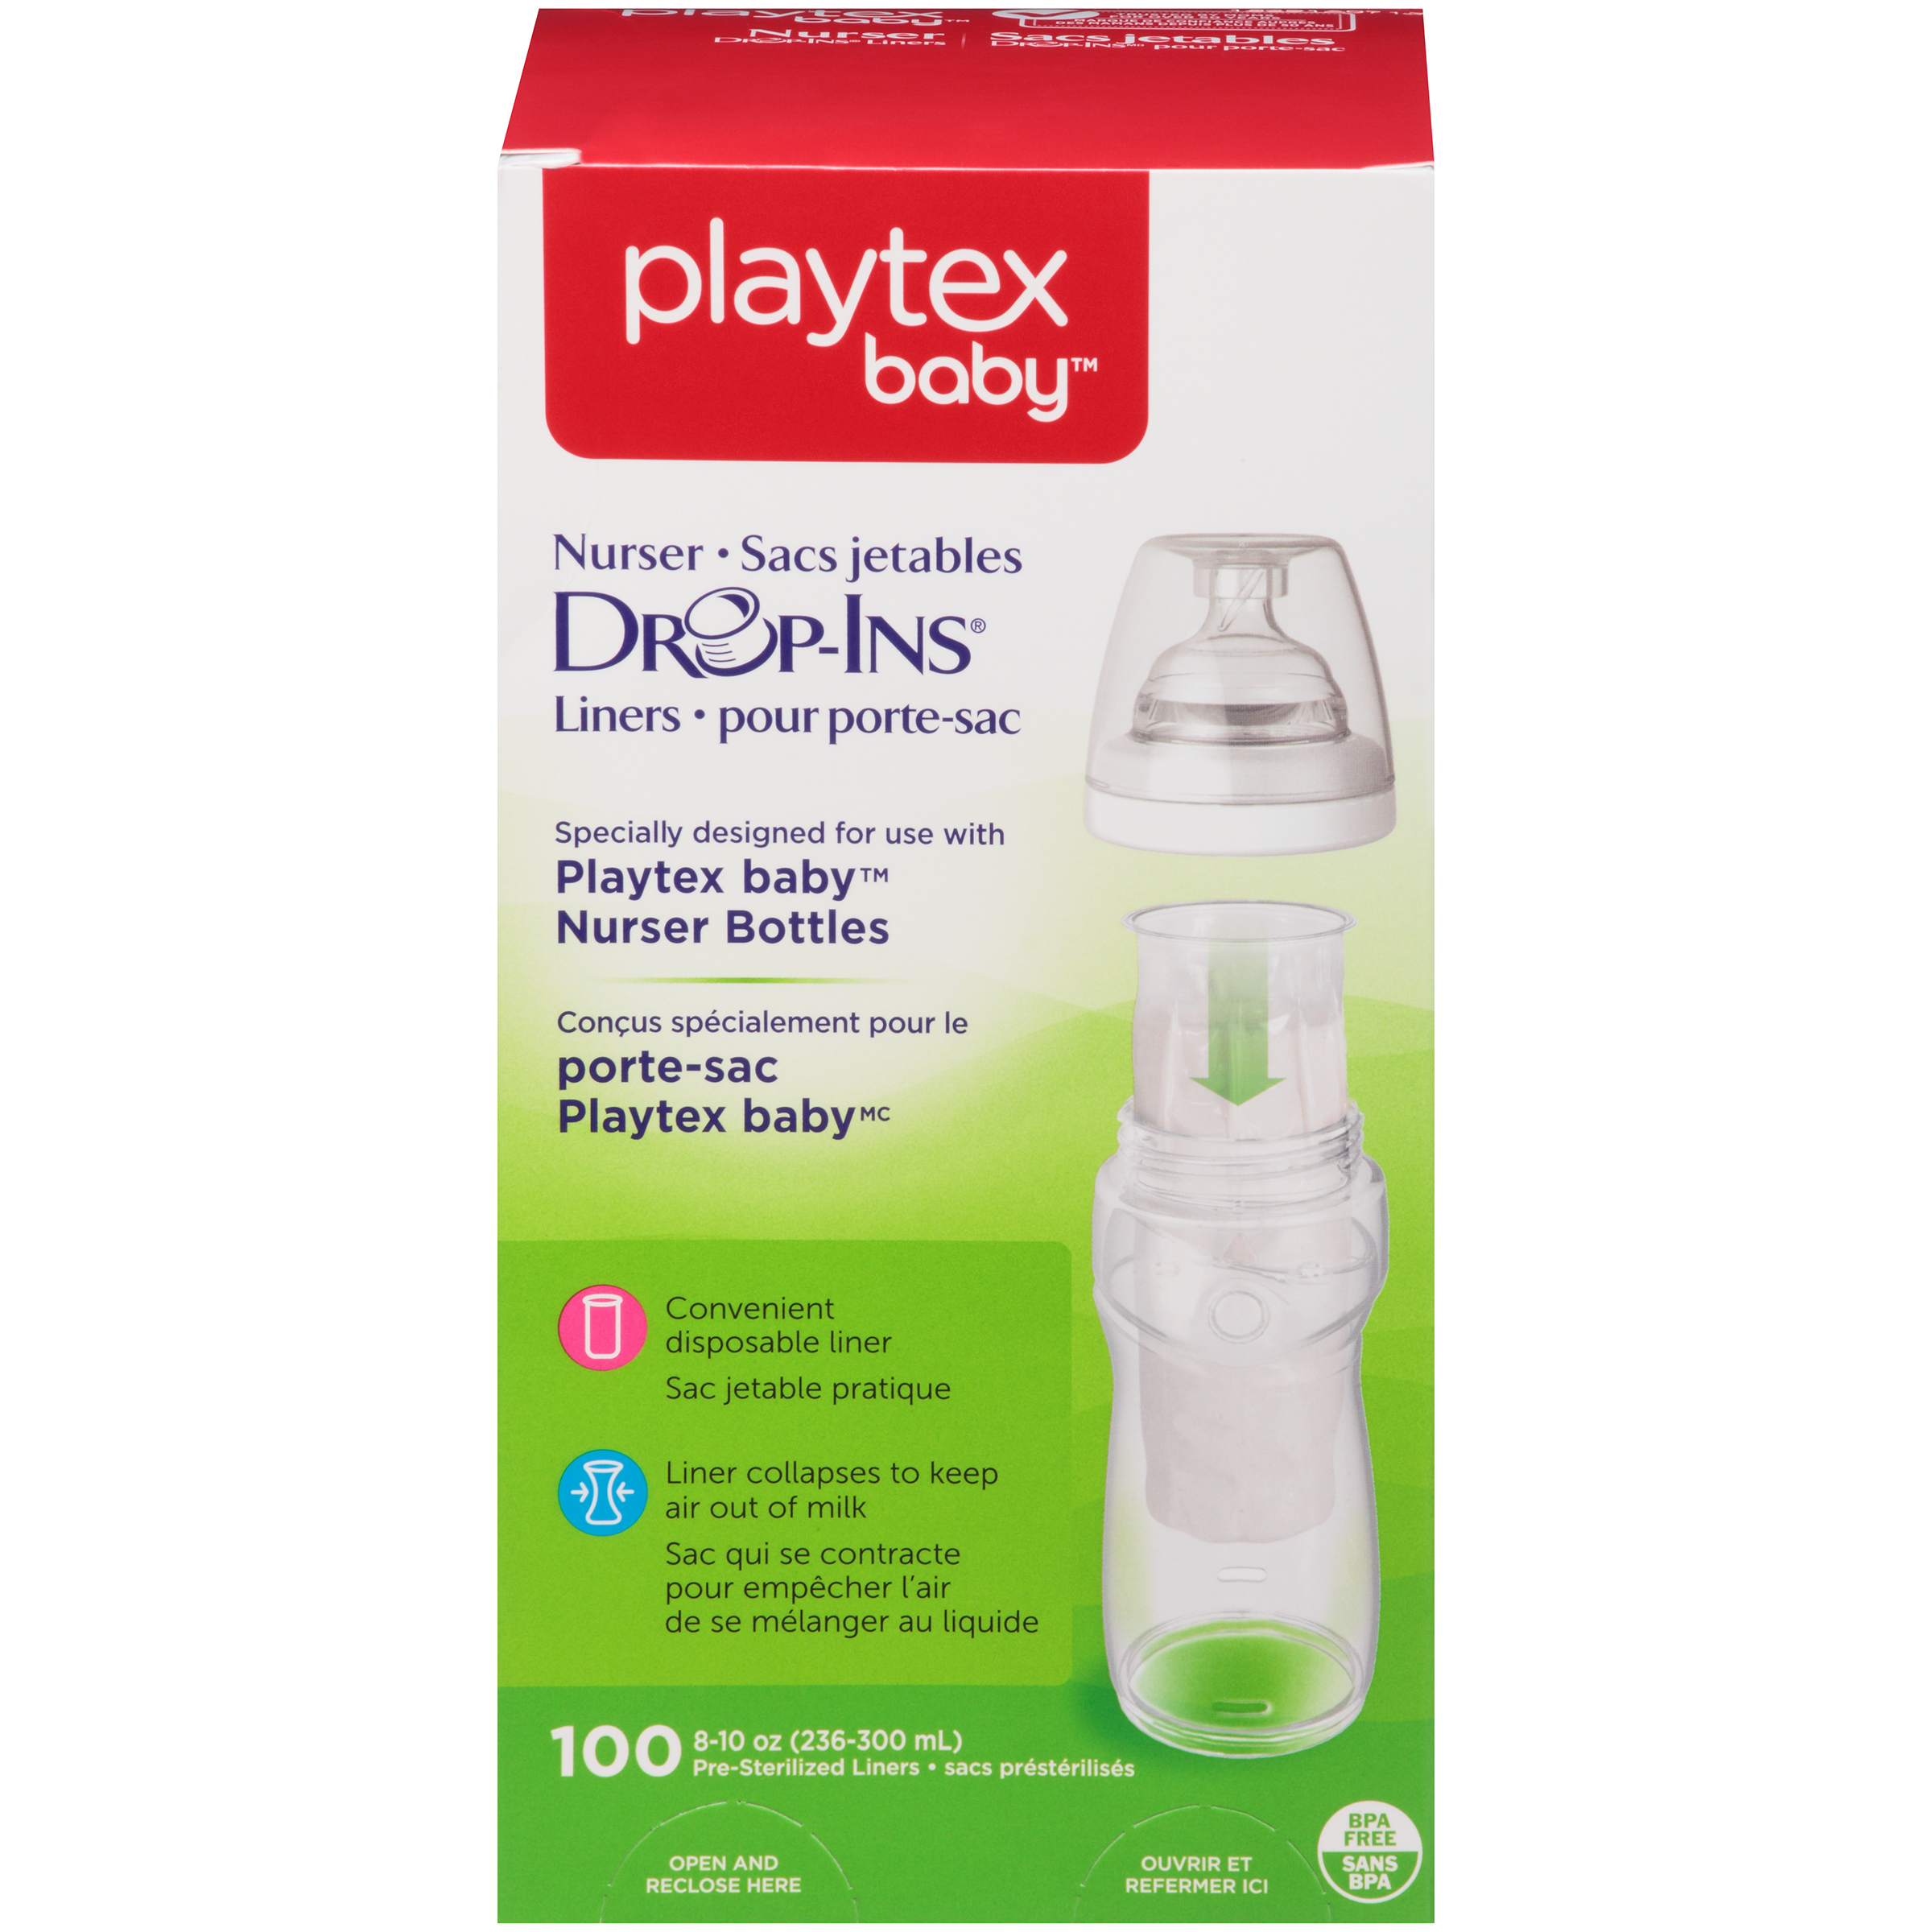 Playtex Baby Drop-in Liners - 8oz, 100ct